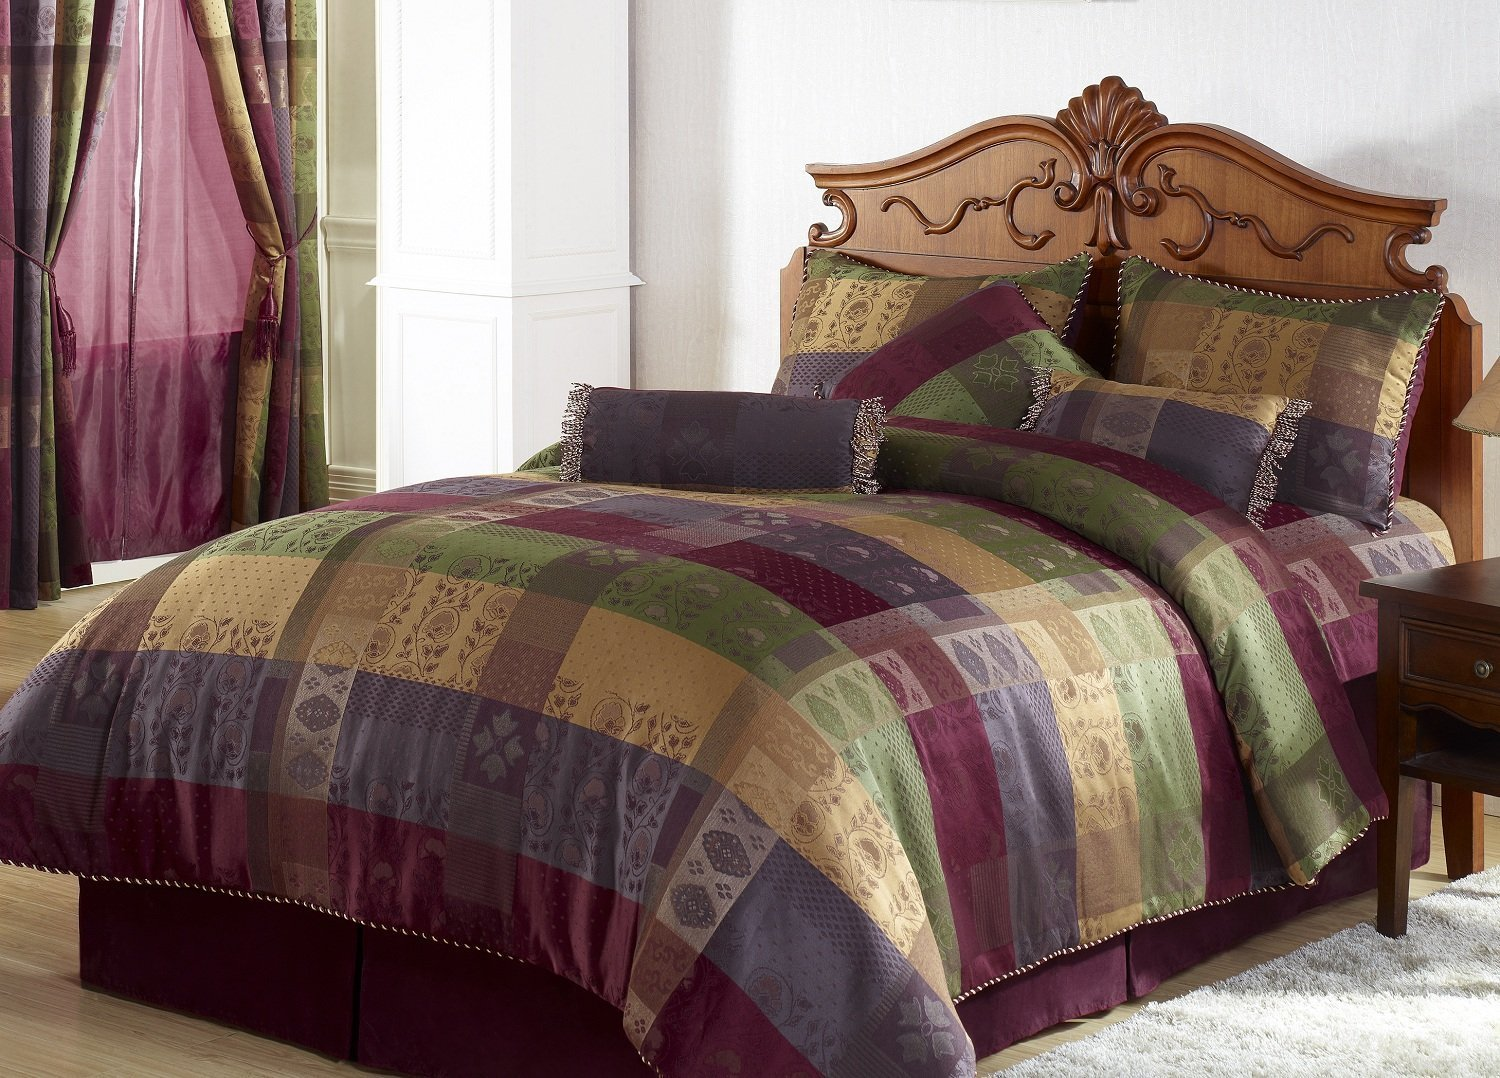 Comforter Set Bag King Size Bedding, Burgundy